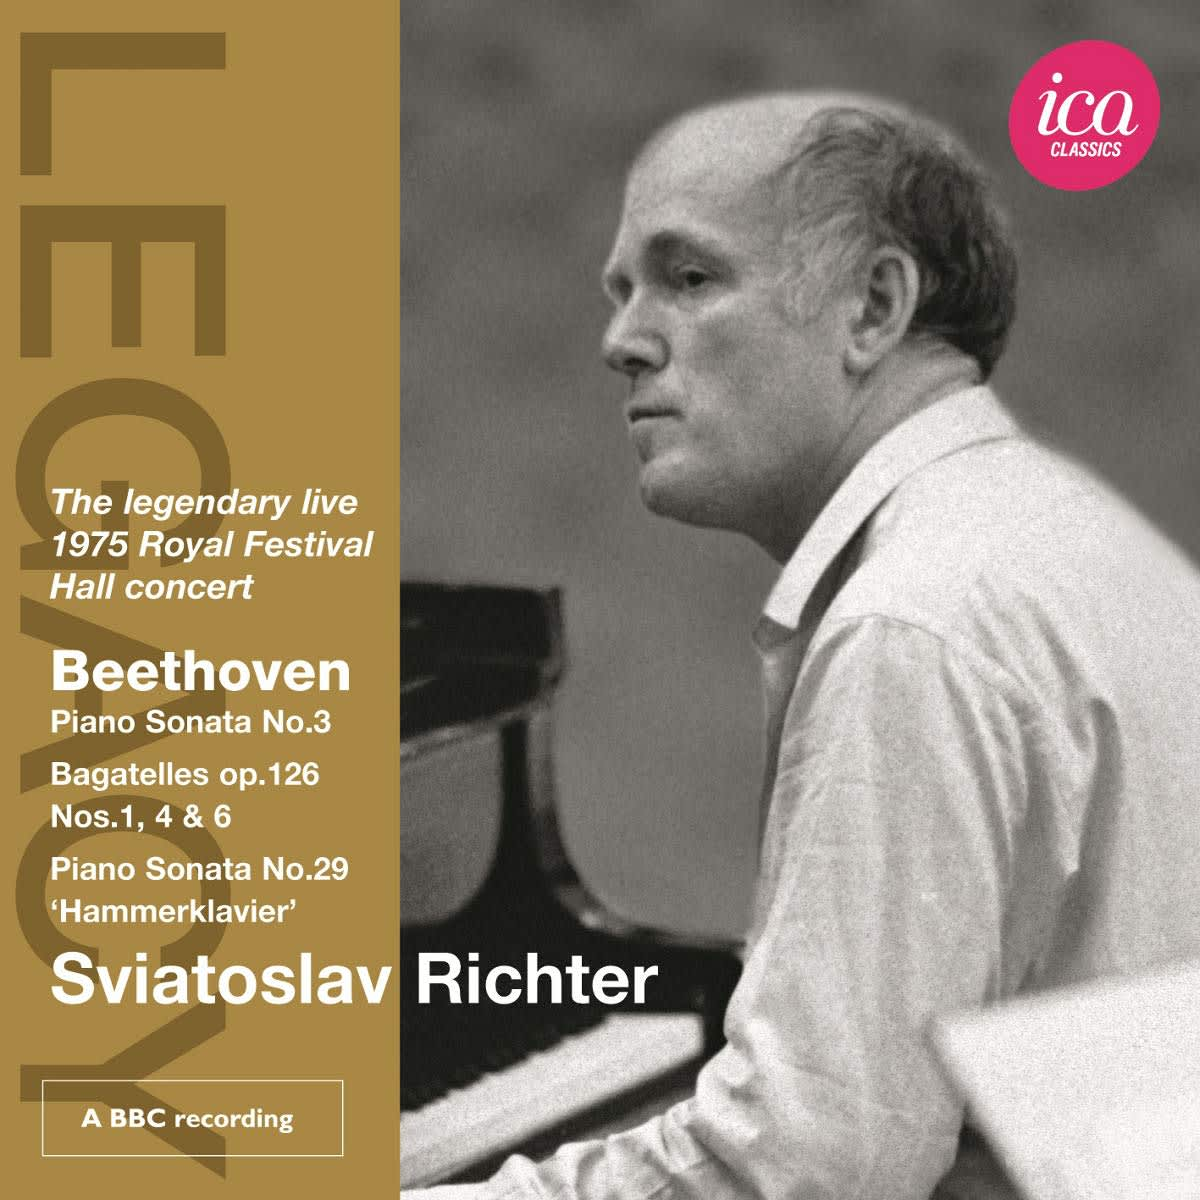 Photo No.1 of Sviatoslav Richter plays Beethoven